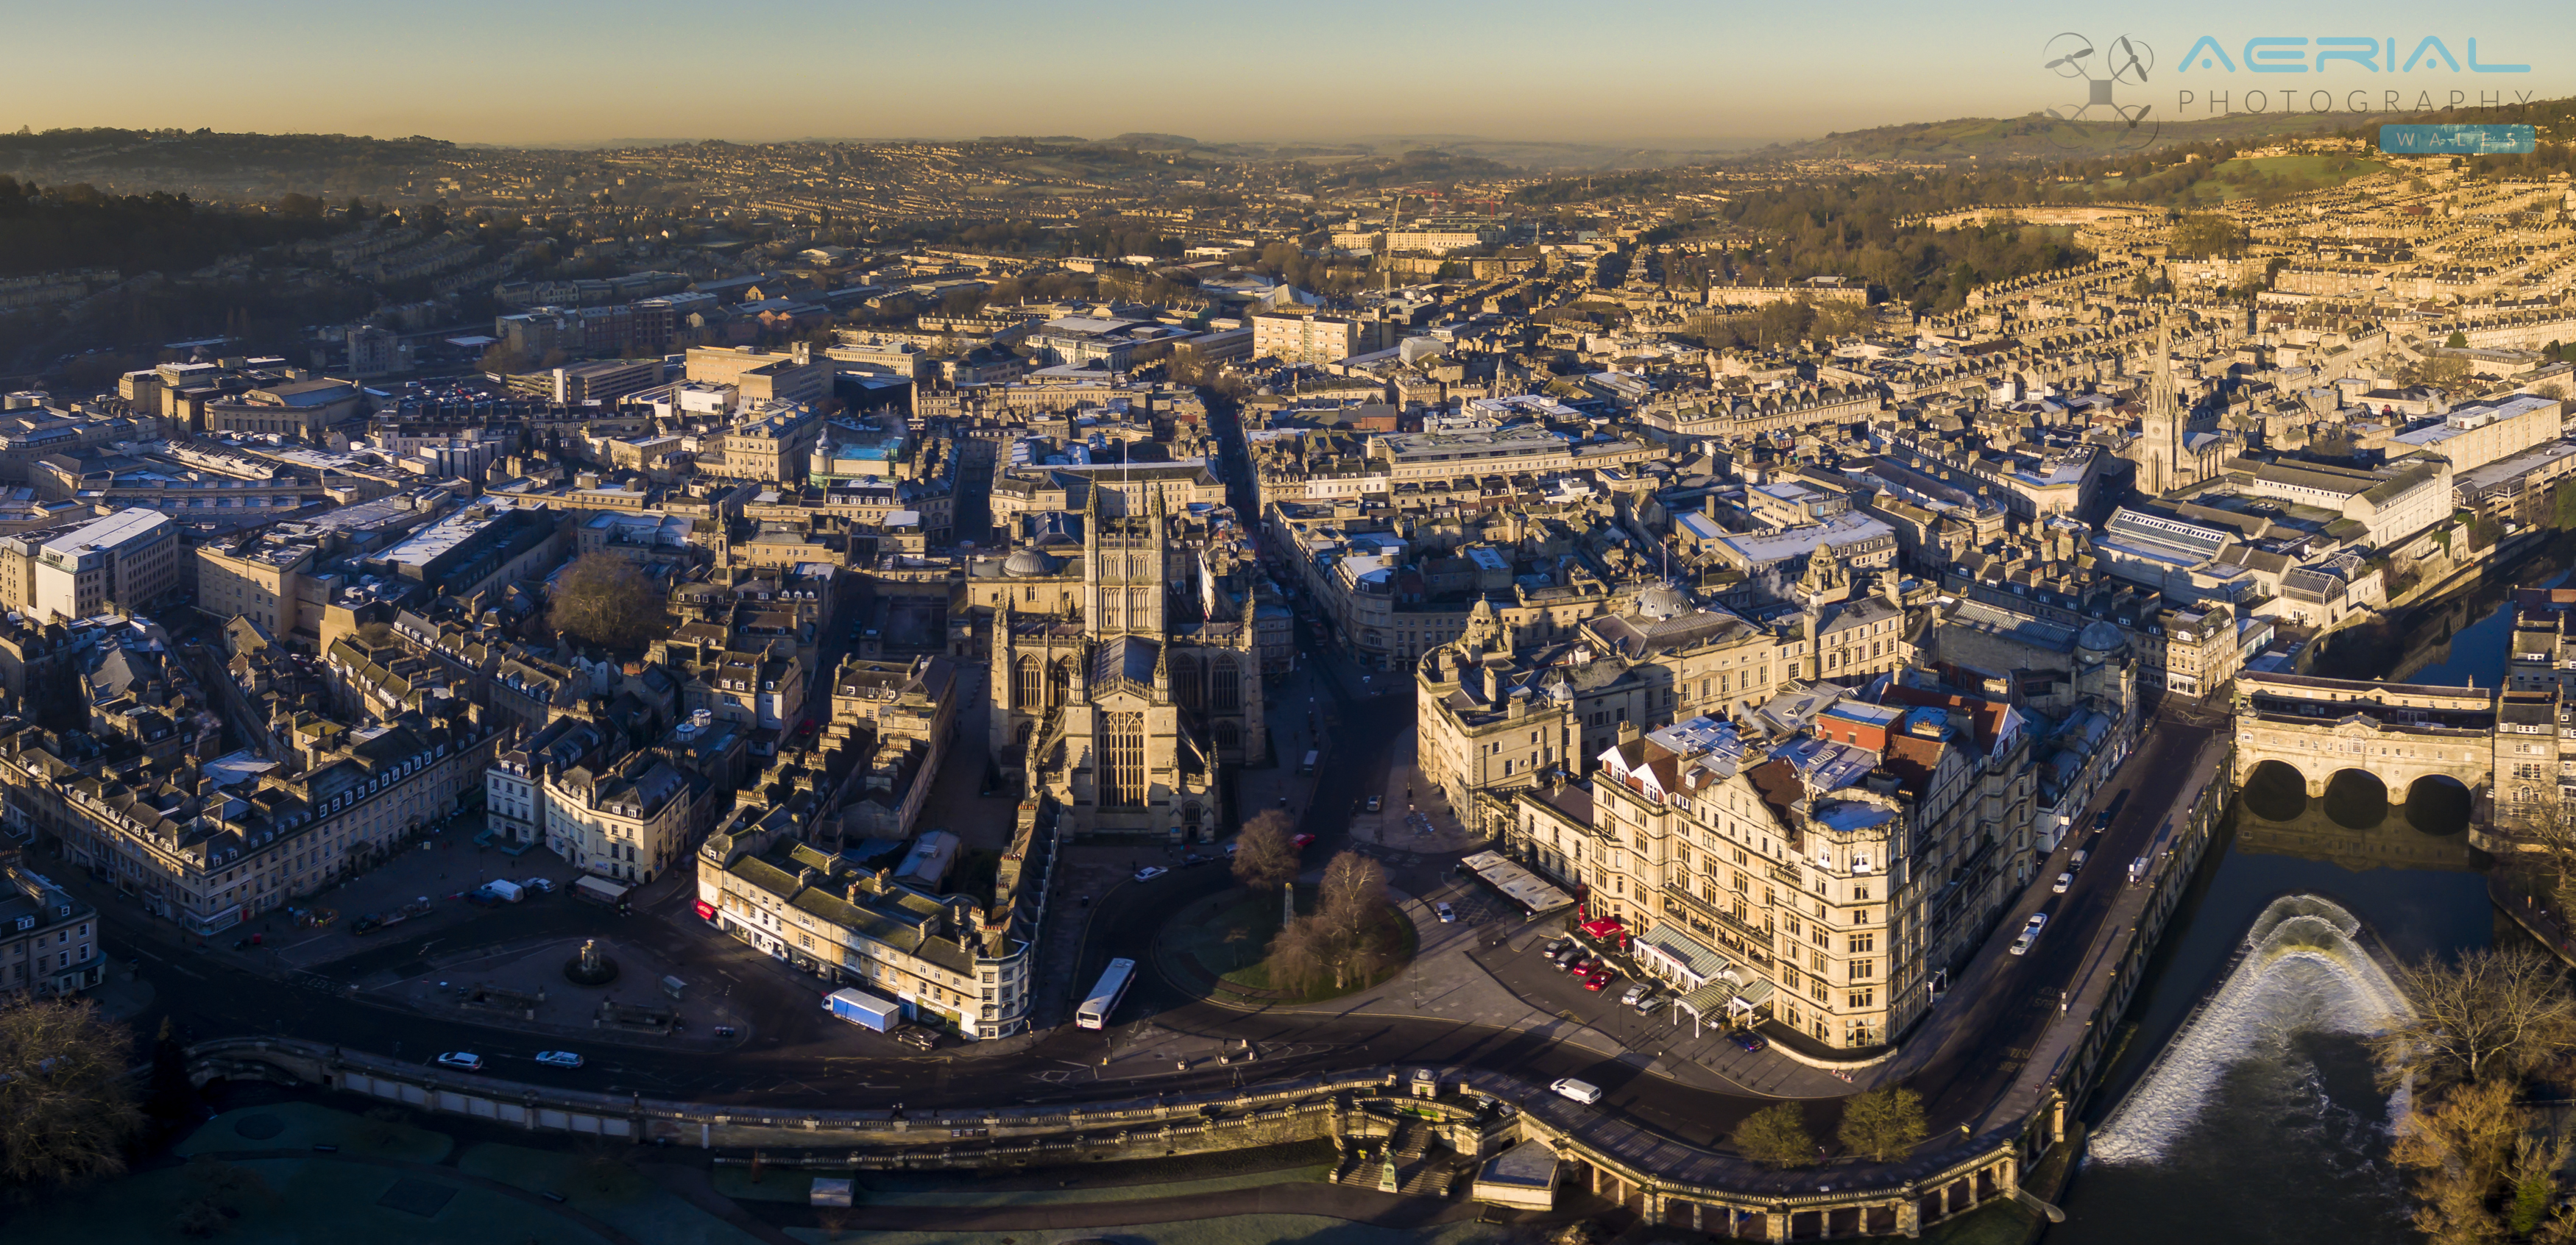 Aerial Photography Wales | Professional Aerial Photography in Wales